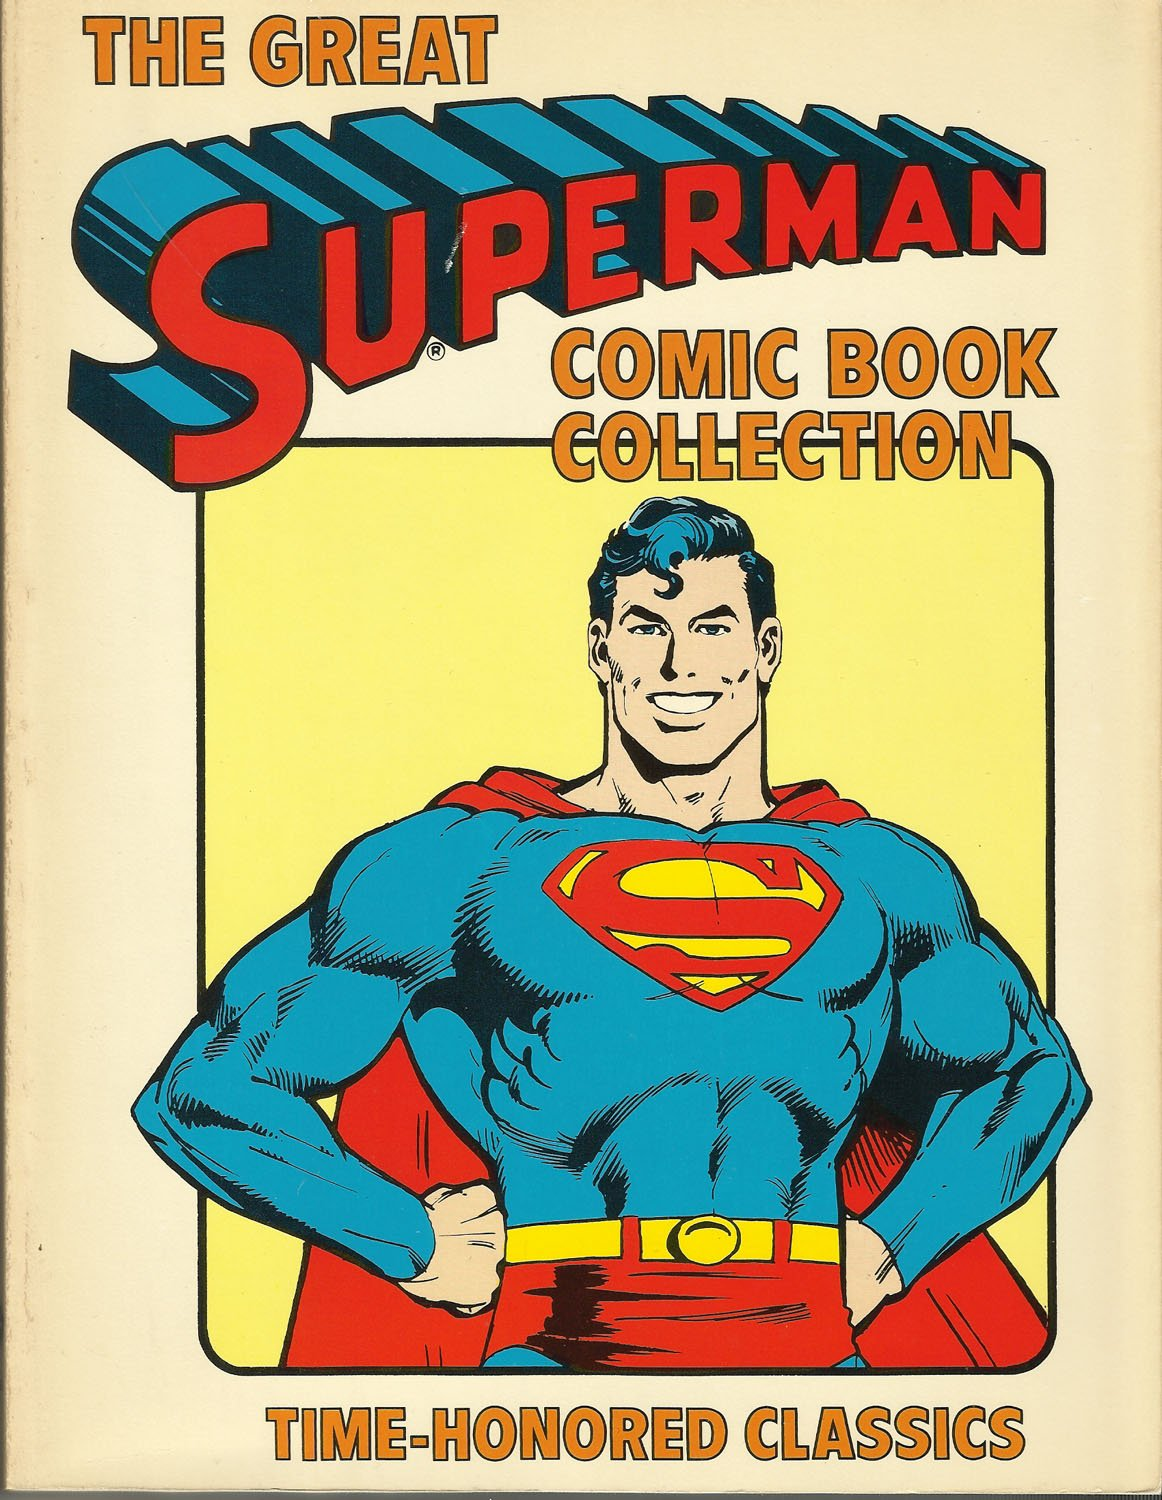 The Great Superman Comic Book Collection Laurie S Sutton Curt Swan Amazon Com Books